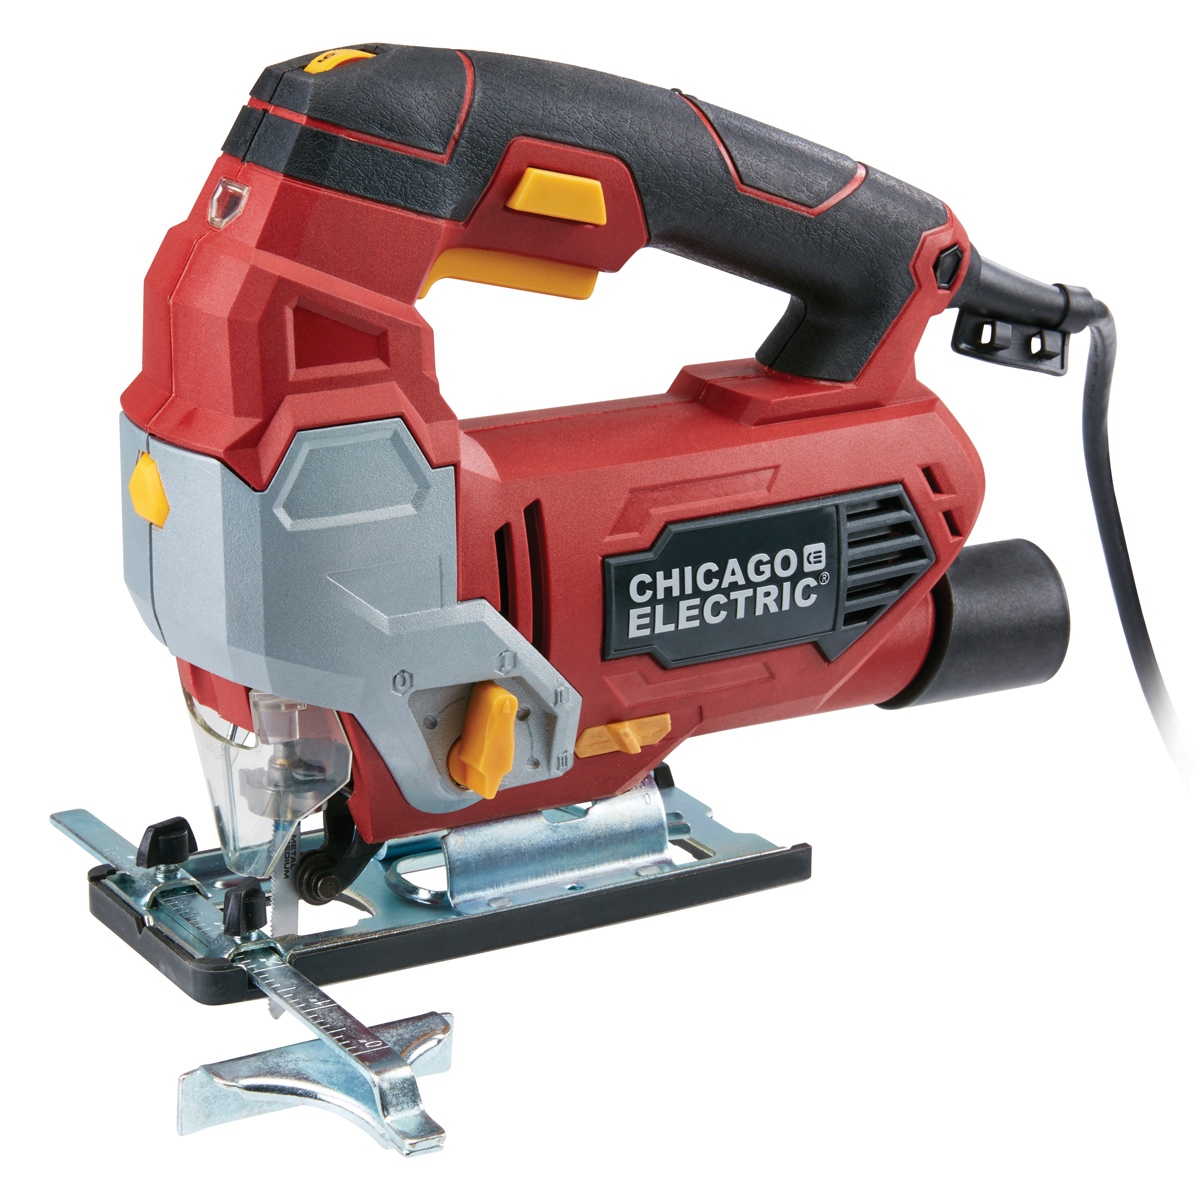 Find best value and selection for your Chicago Electric Orbital Jigsaw search on eBay. World's leading marketplace.